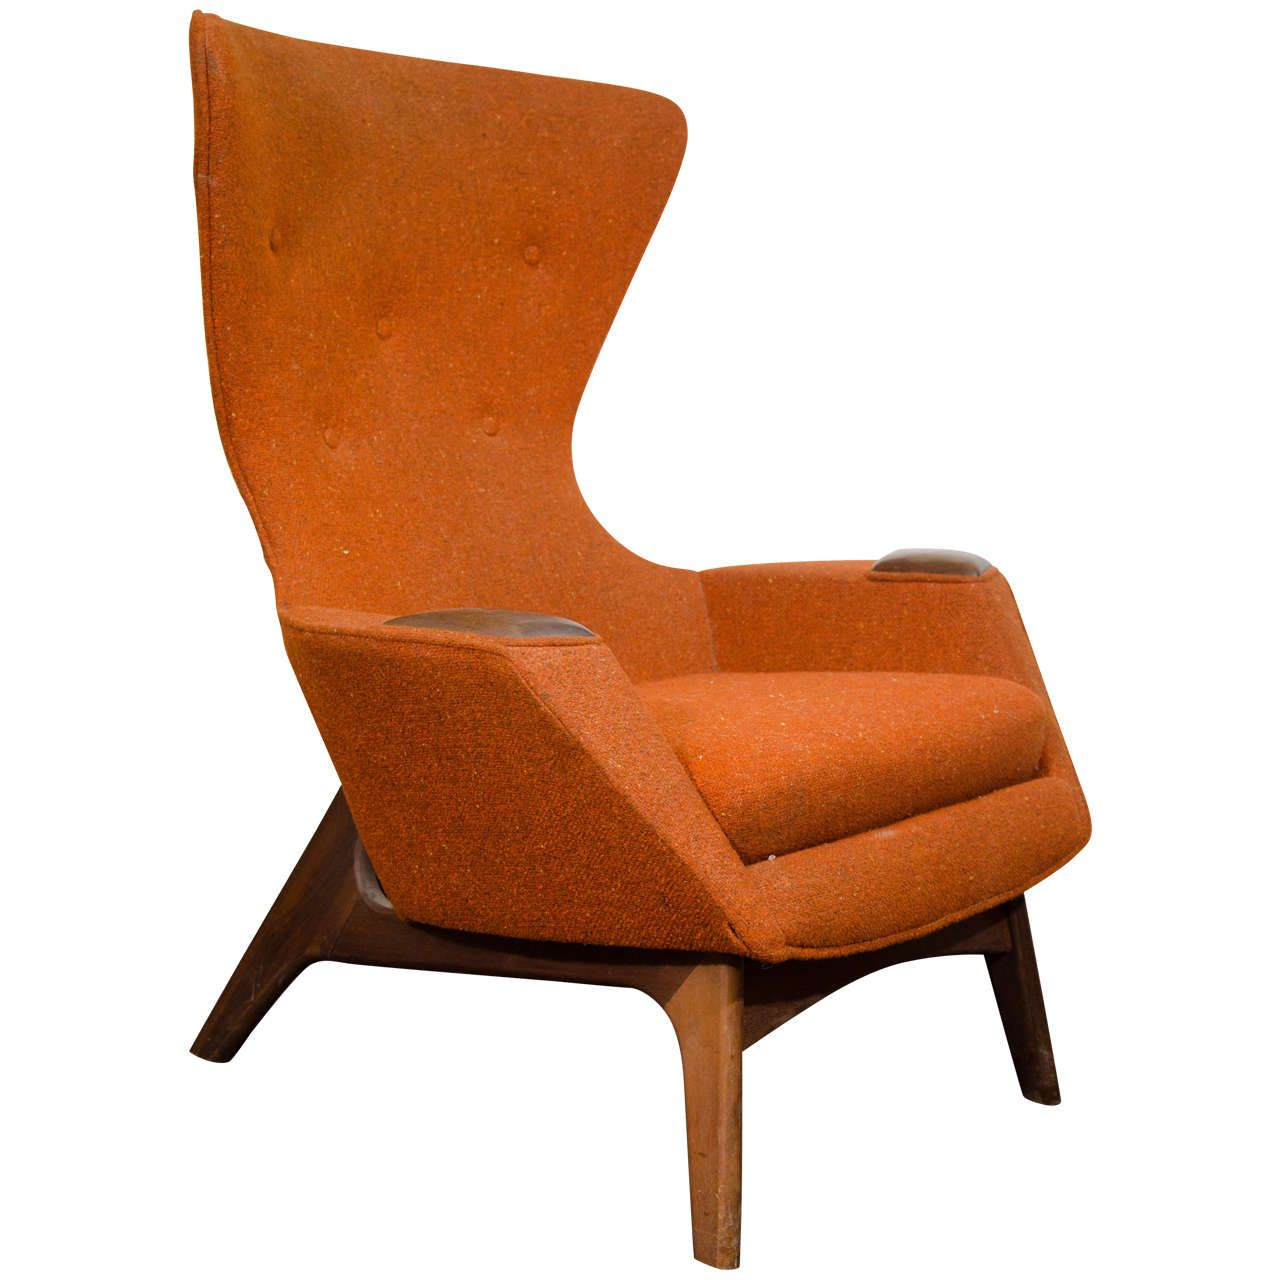 Orange Mid Century Modern Chair Midcentury High Back Wing Chair By Adrian Pearsall Color